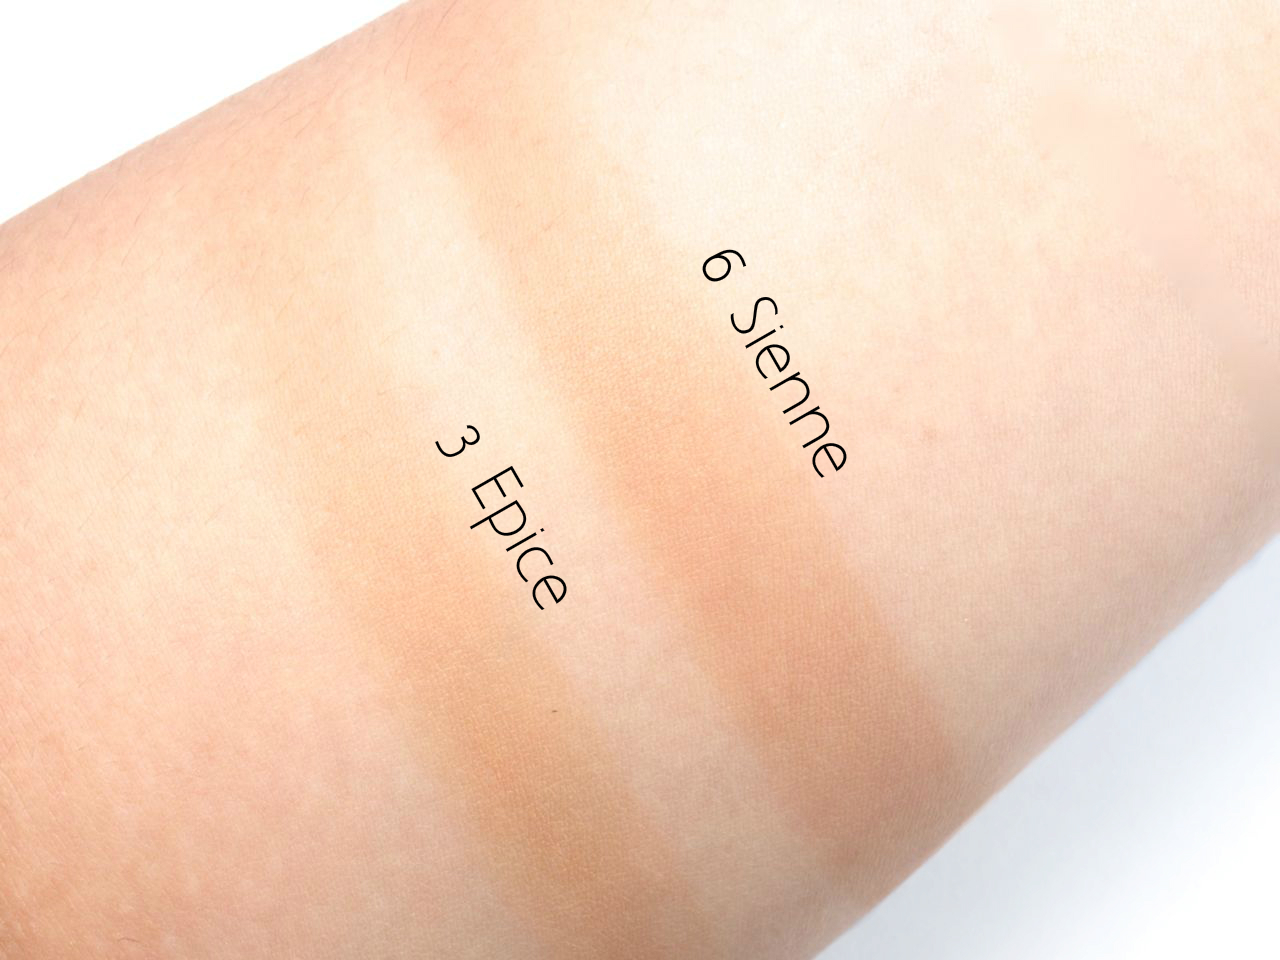 YSL Yves Saint Laurent Sun-Kissed Blur Perfector Healthy Glow Balm-Powder: Review and Swatches